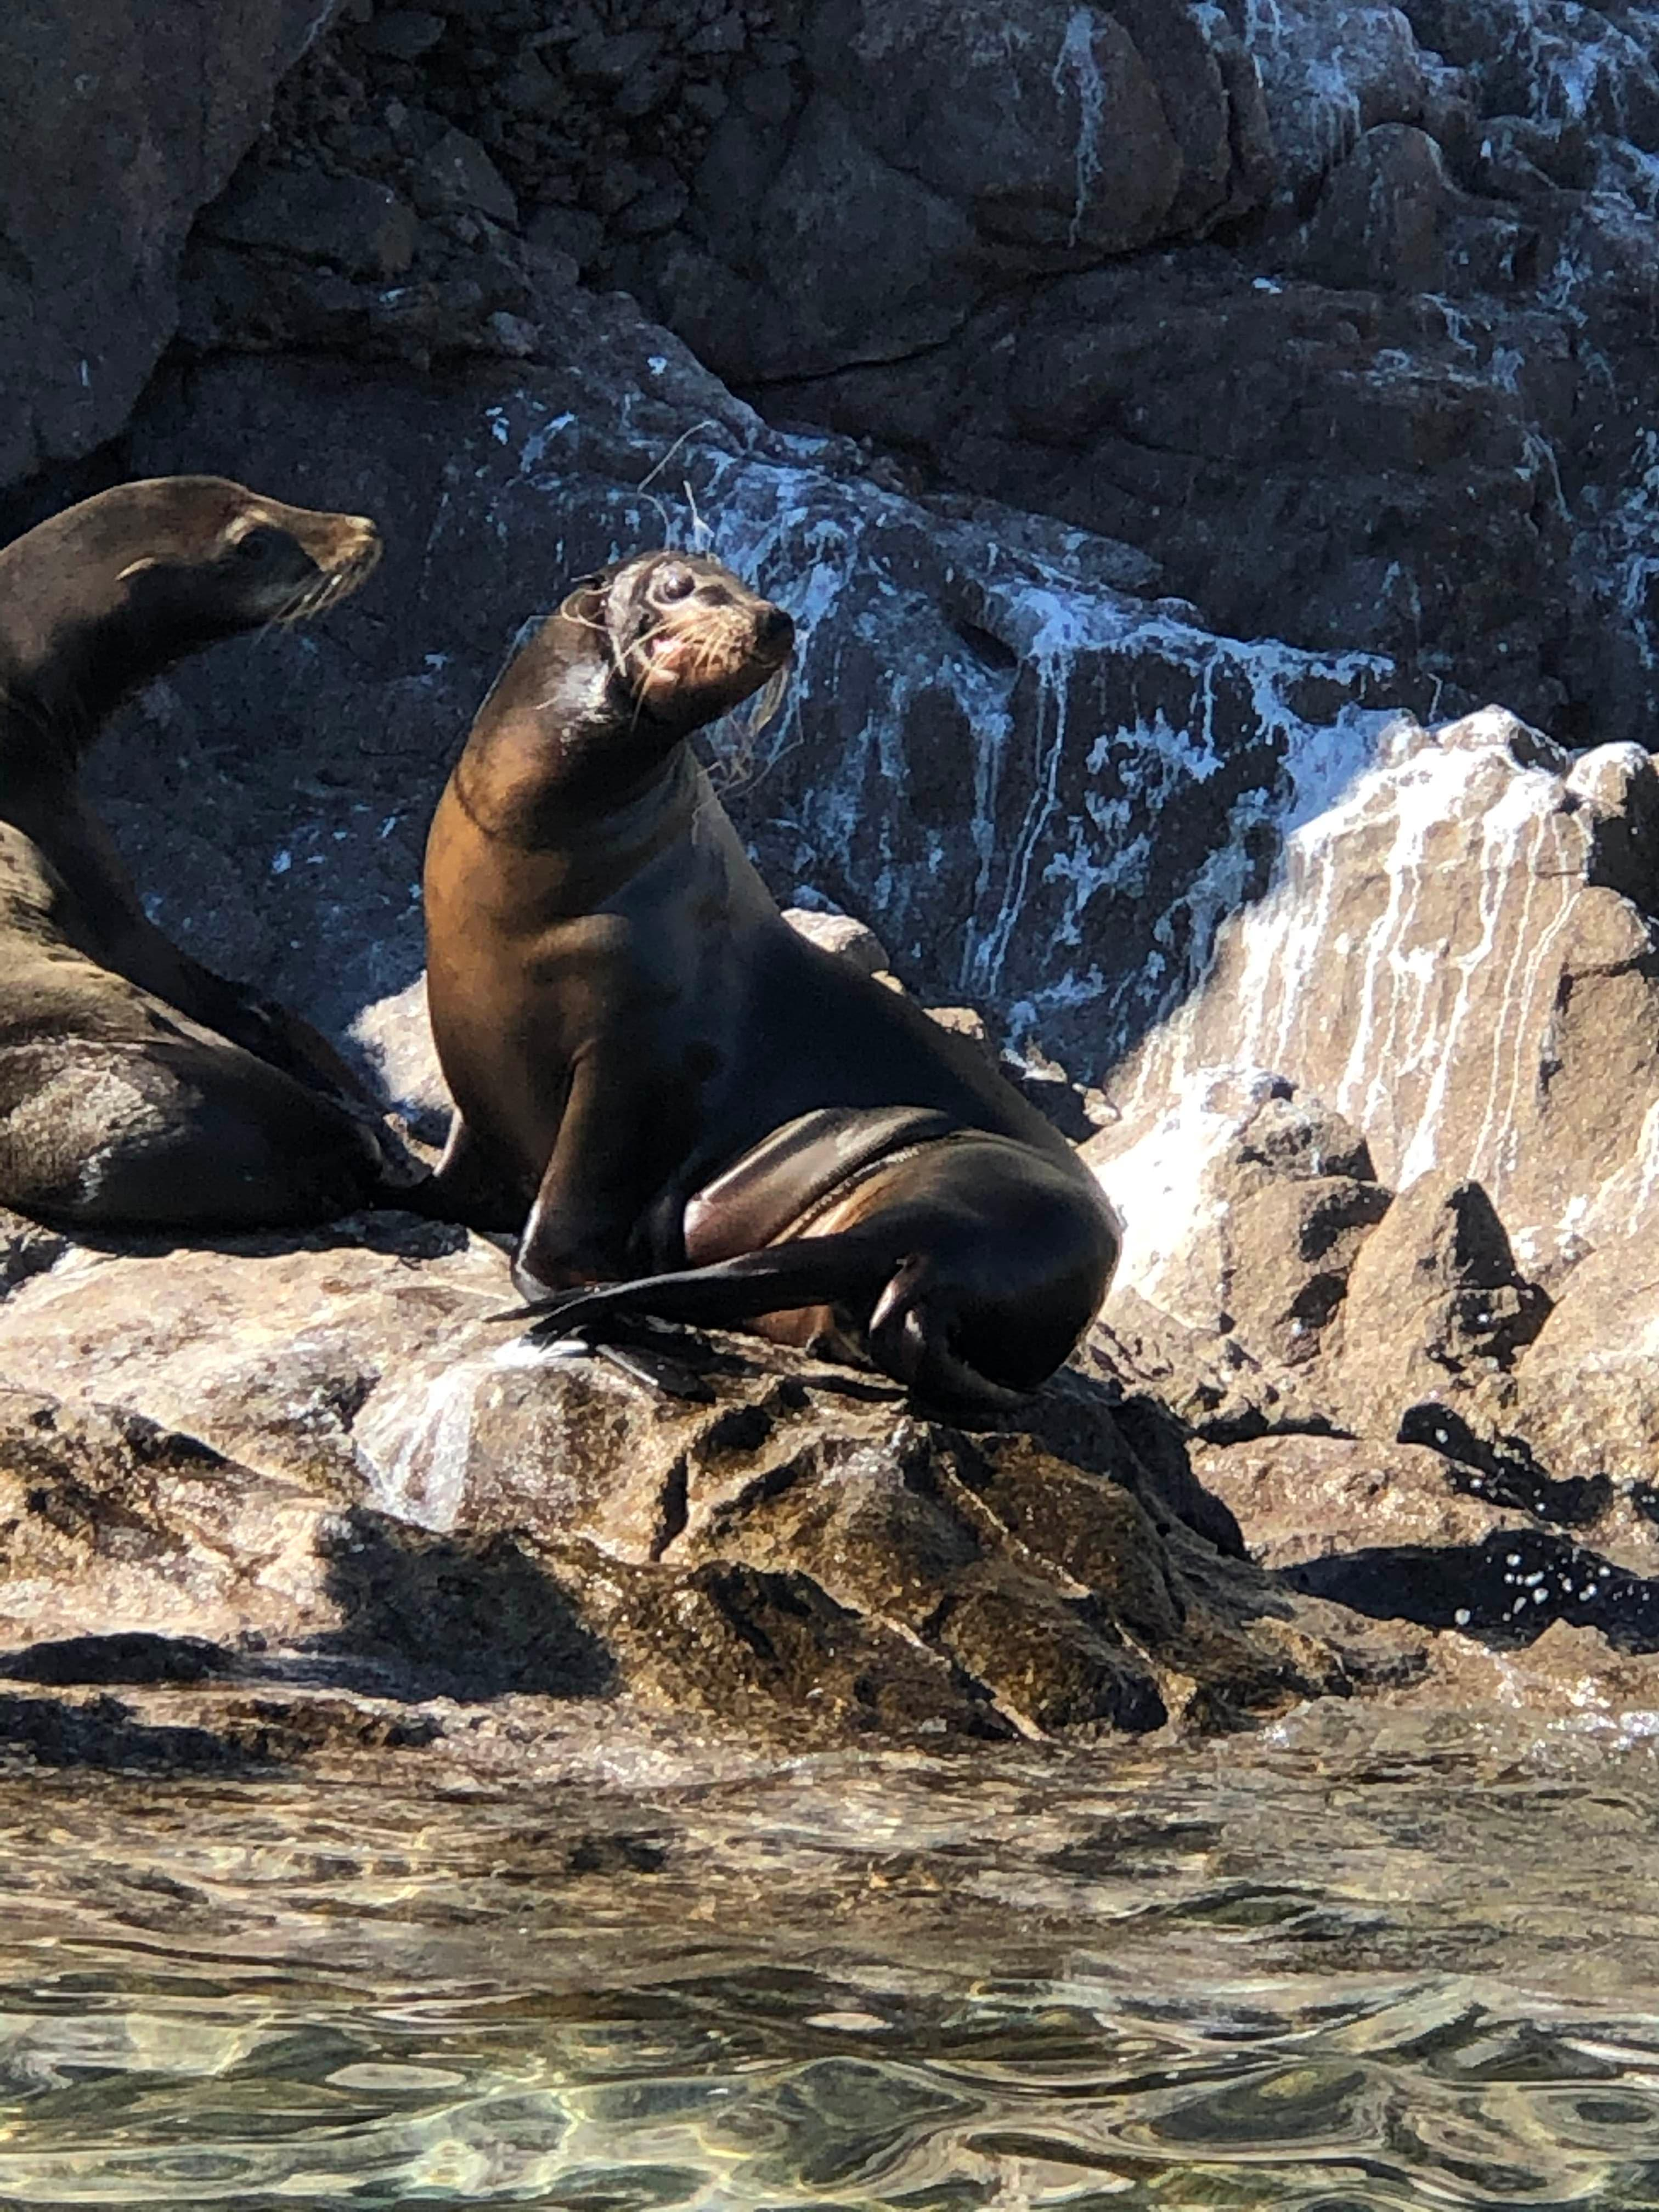 Sea Lion tangled in fishing line.